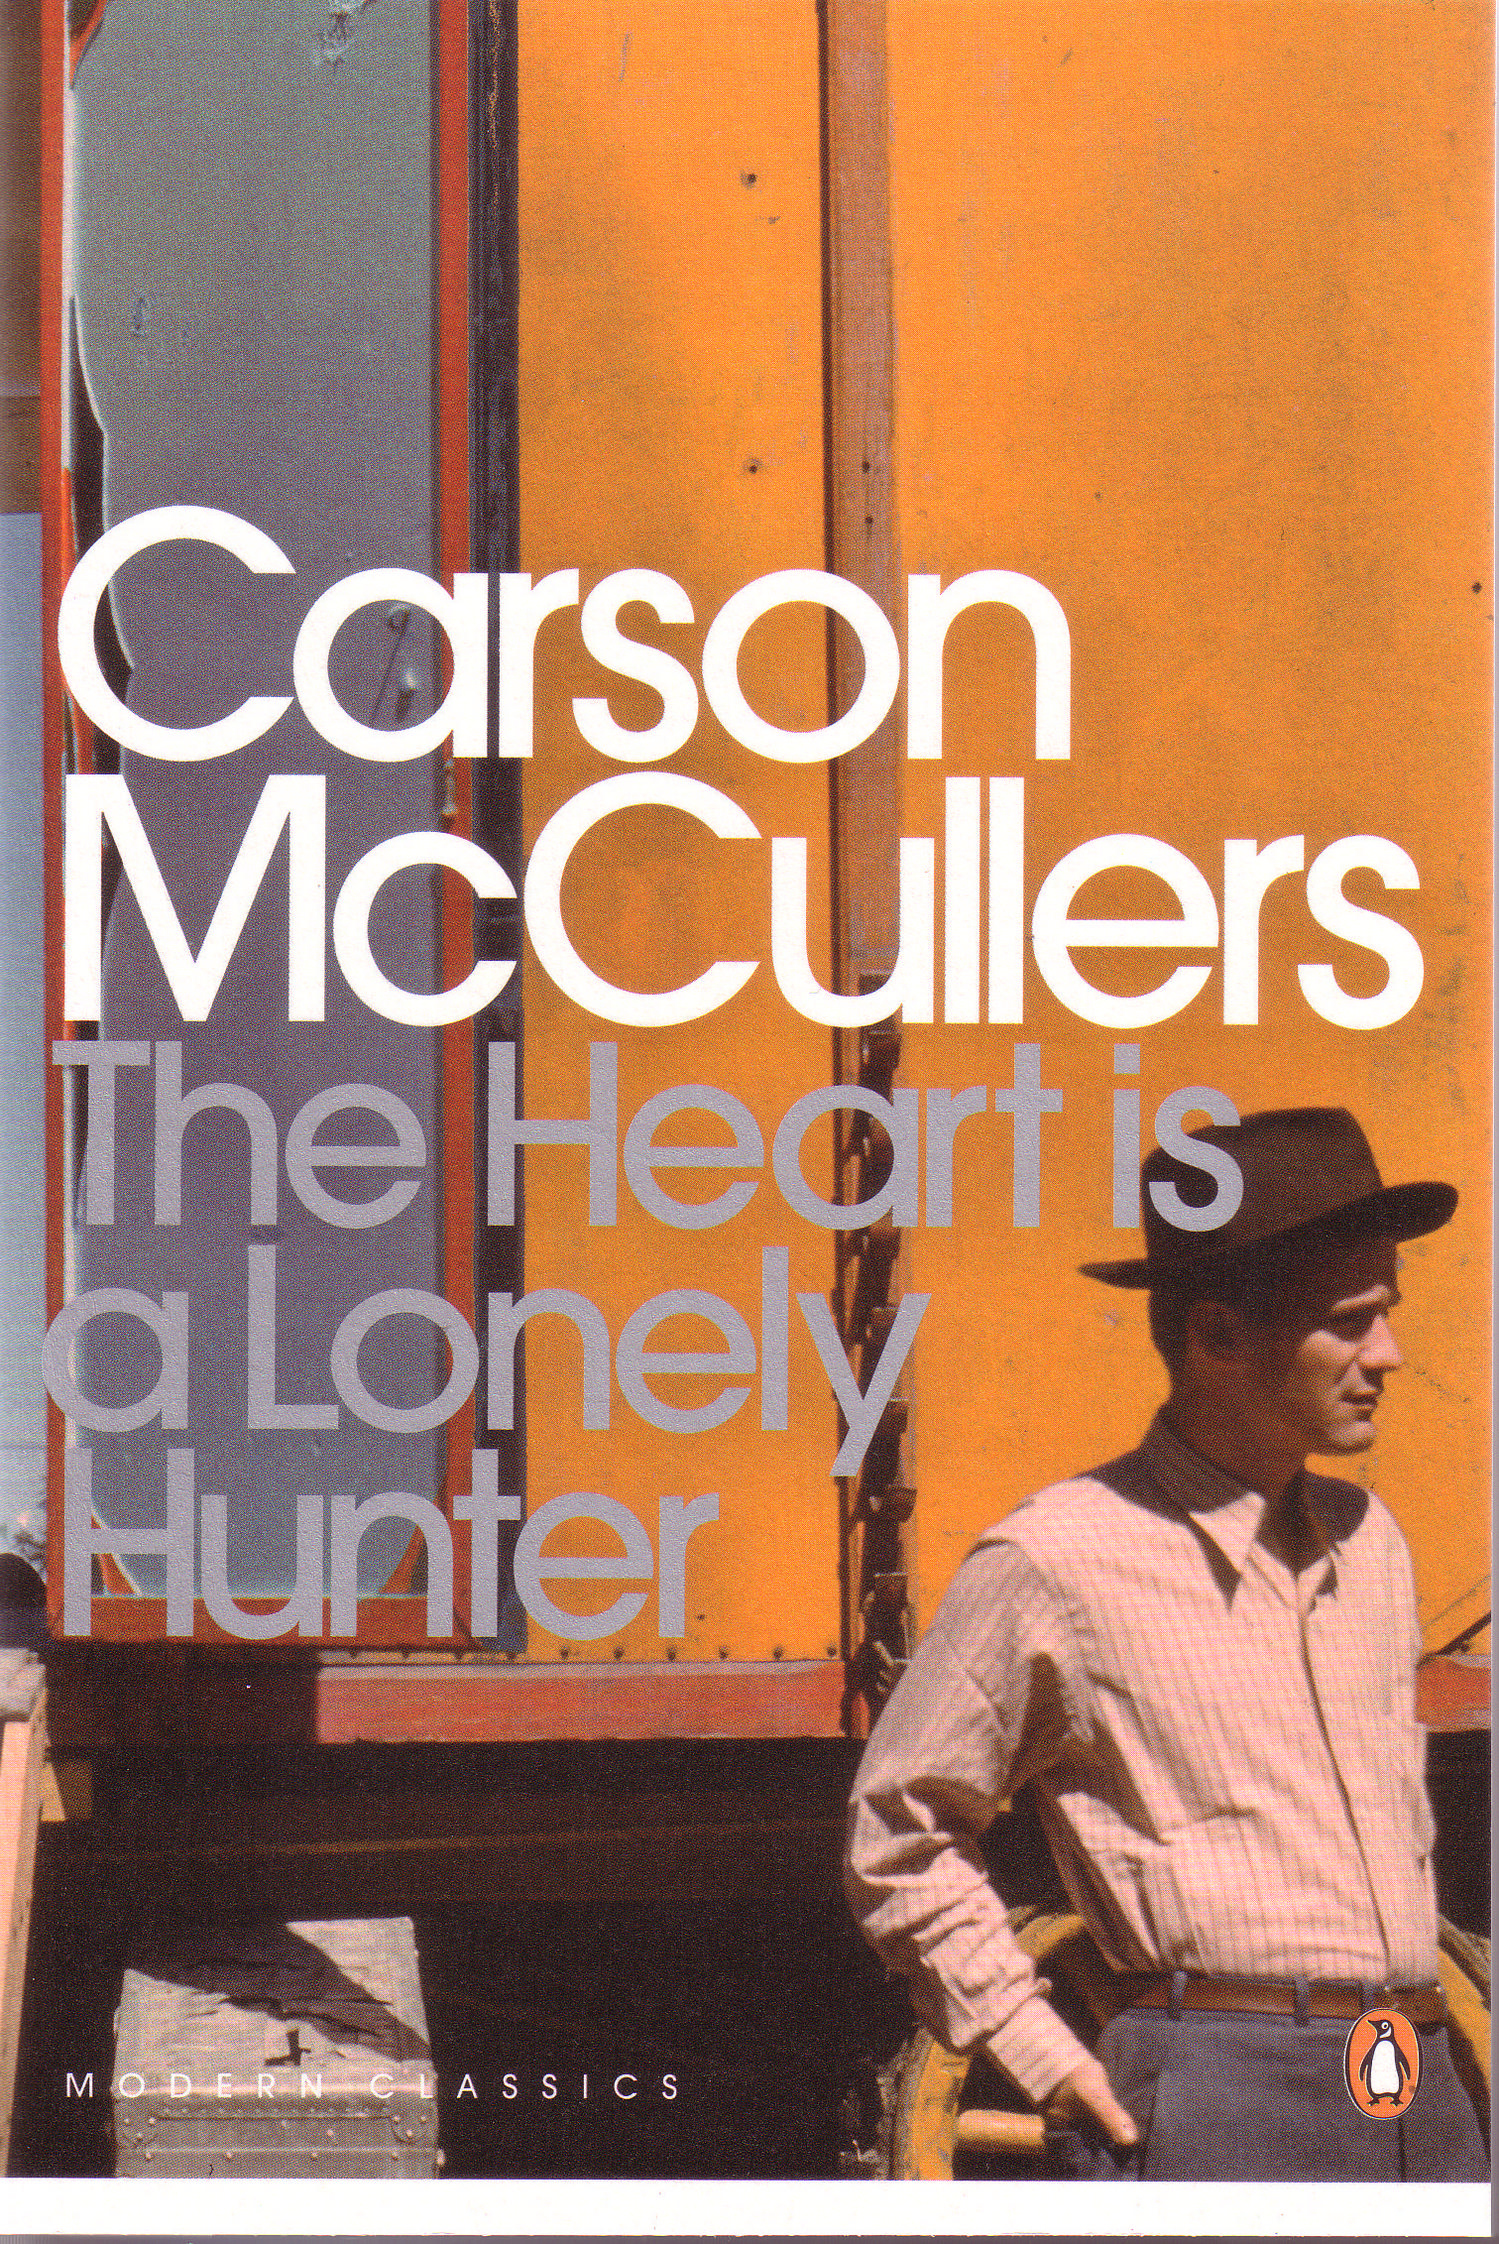 an analysis of the story the heart is a lonely hunter by carson mccullers The first novel by georgia writer carson mccullers, the heart is a lonely hunter is commonly treated as a coming-of-age story by readers and critics alike many of.